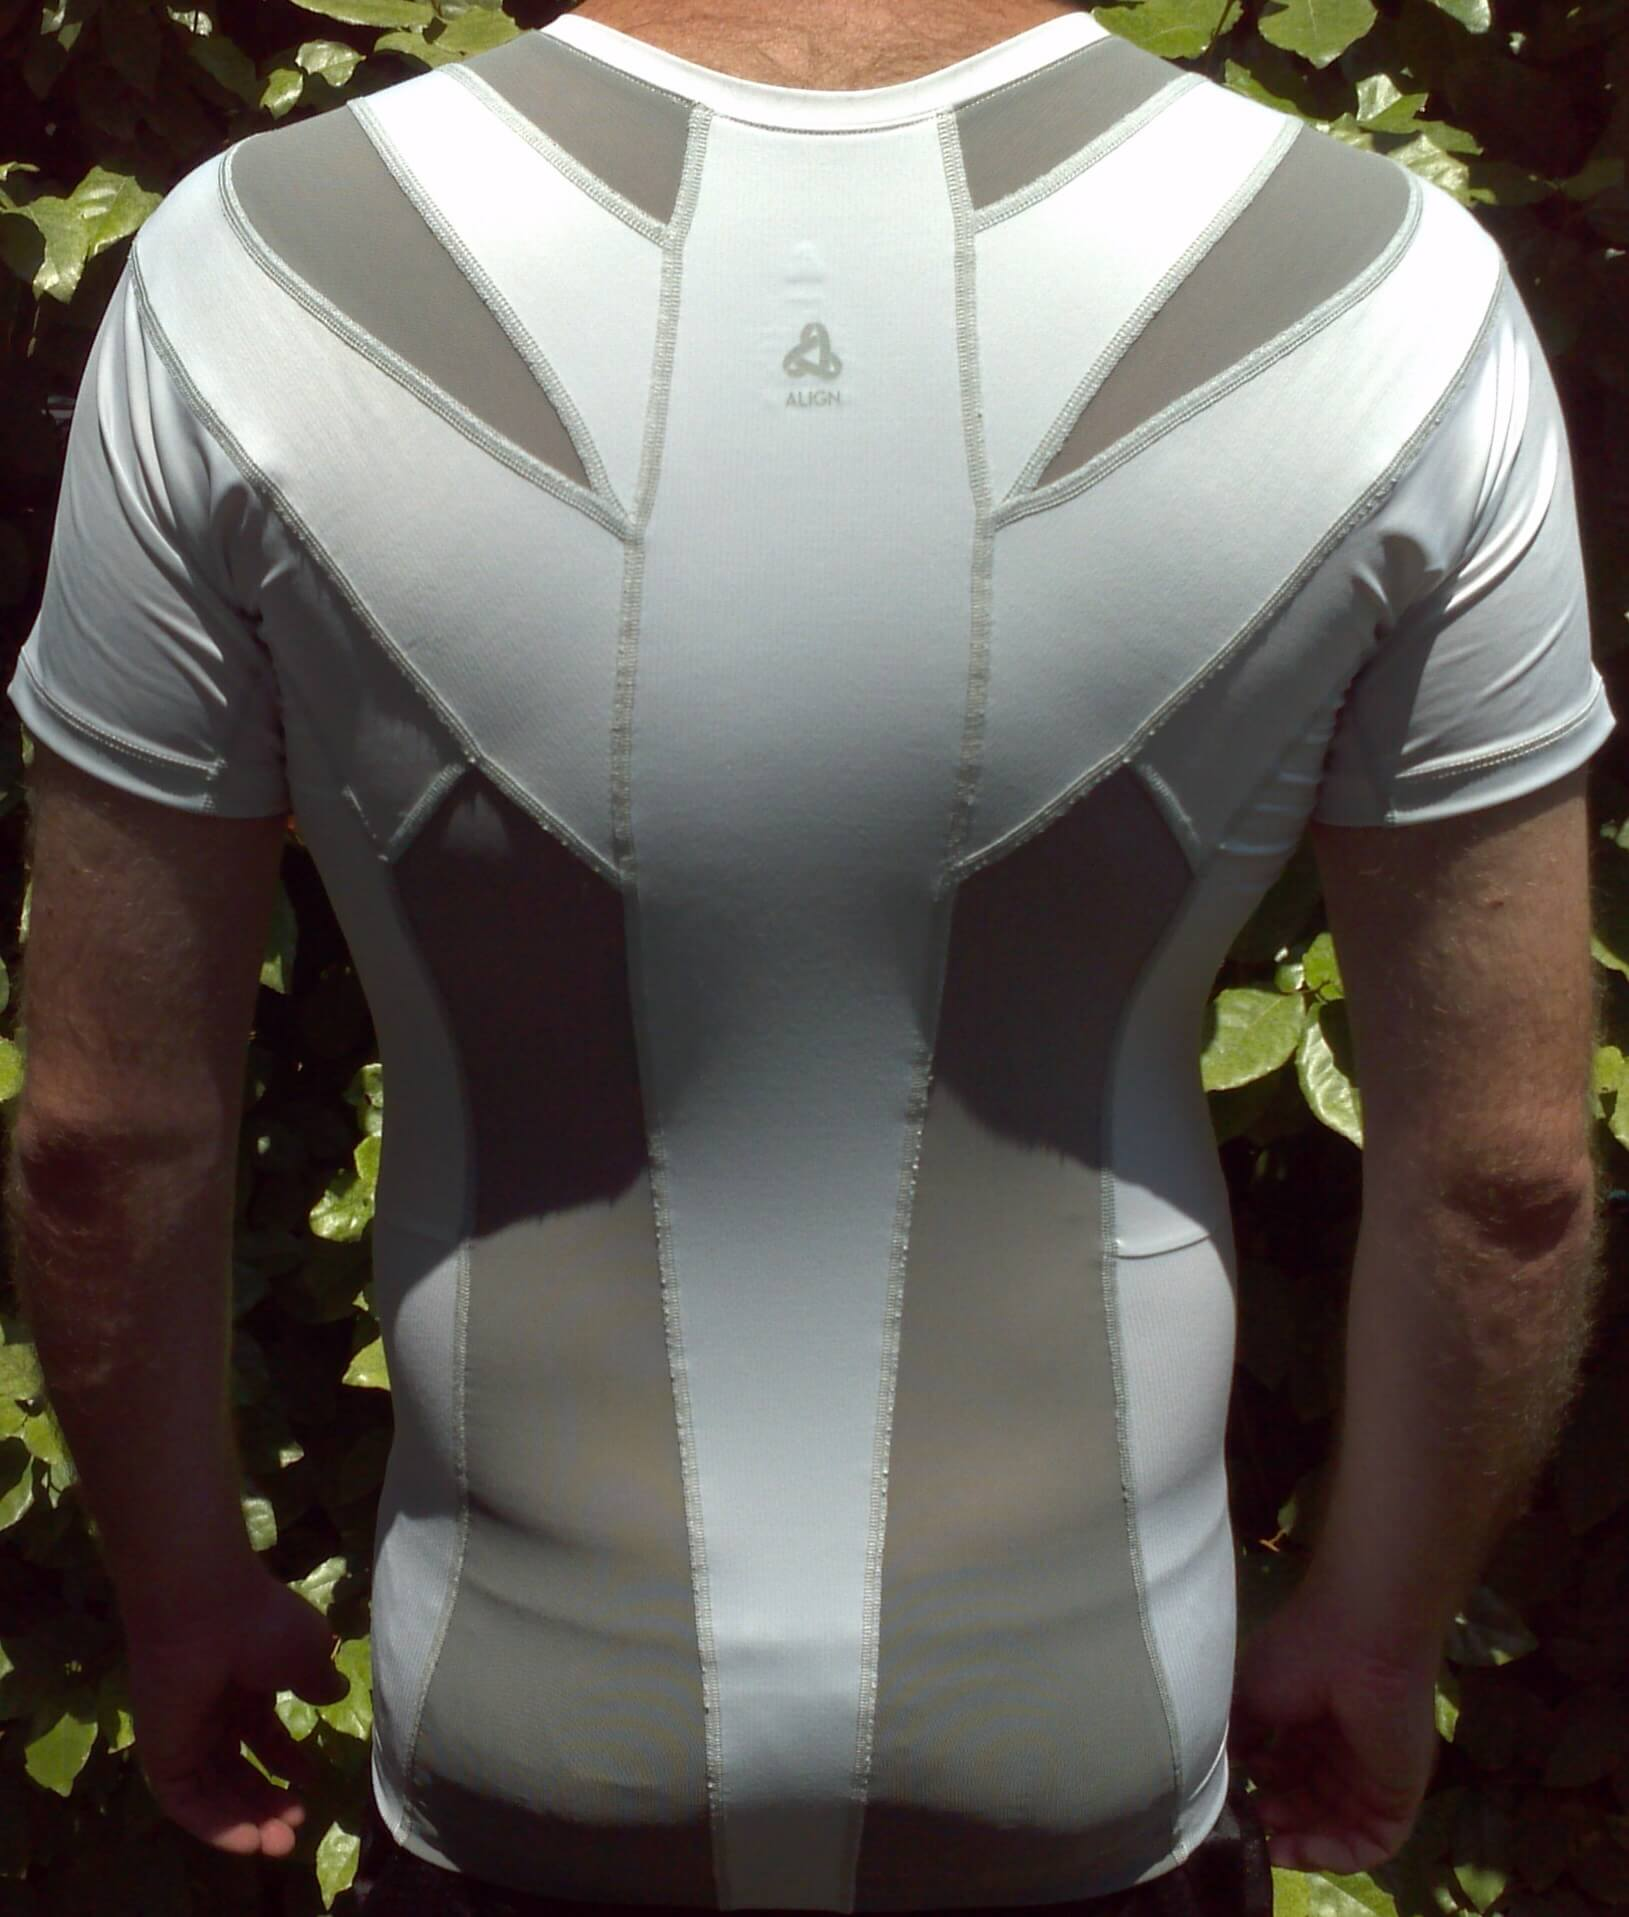 Product Review Of The Alignmed Posture Shirt 2 0